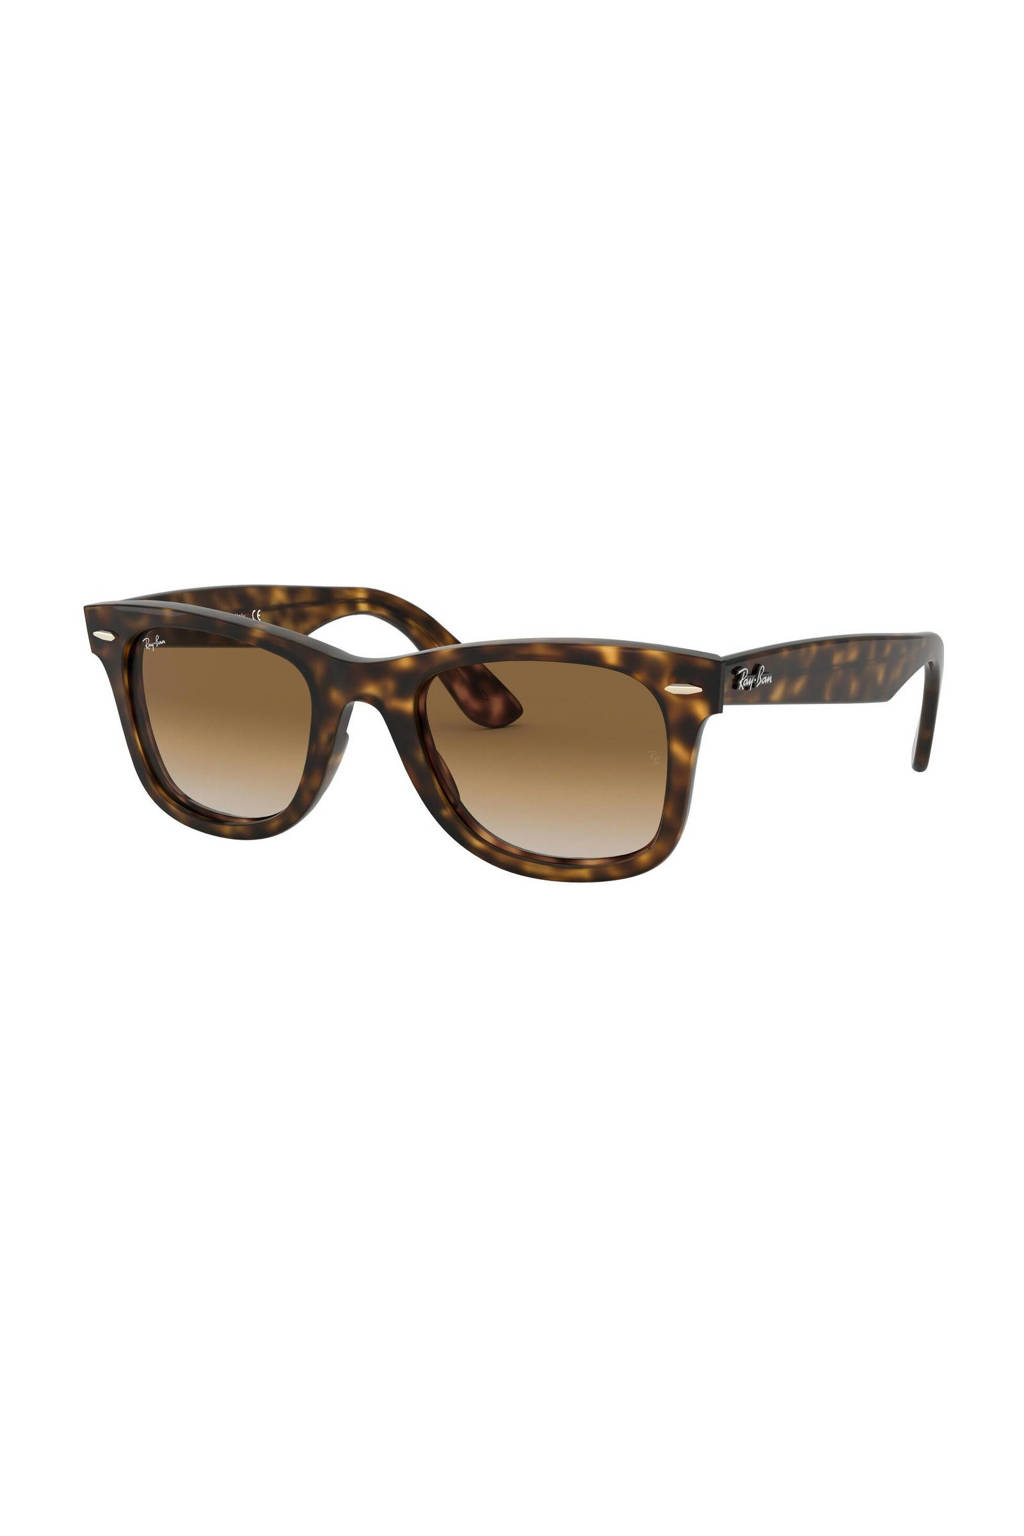 Ray-Ban zonnebril 0RB4340, Bruin